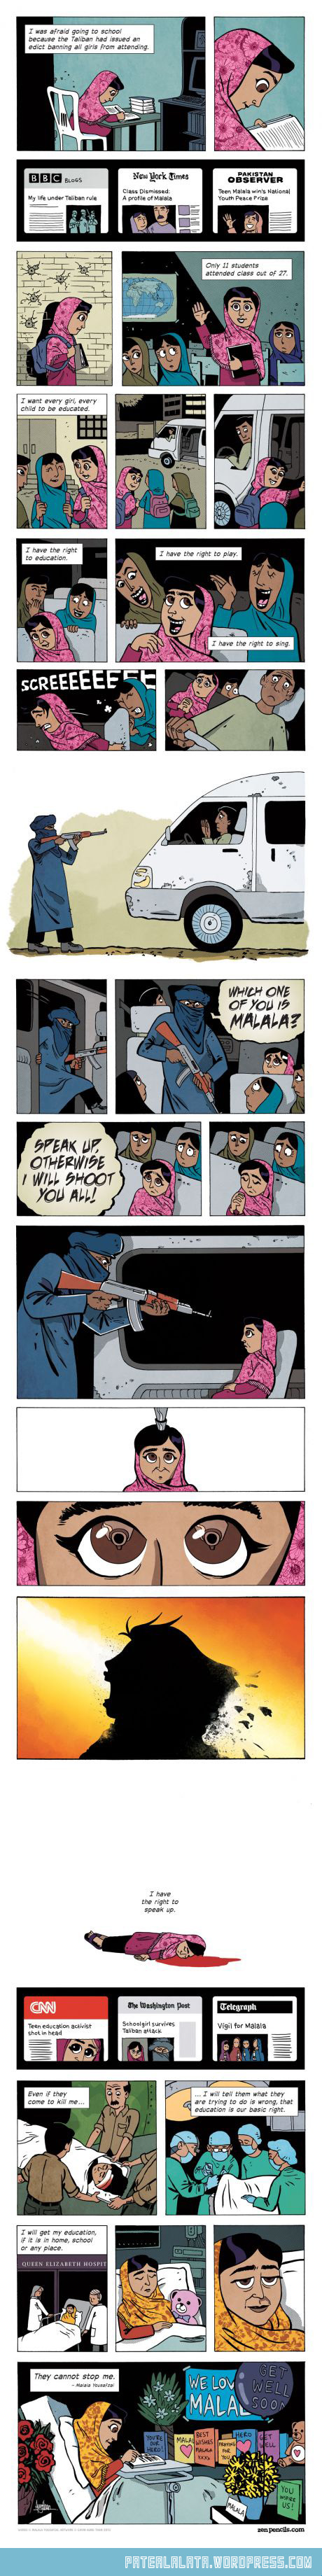 cool-comic-Malala-Yousafzai